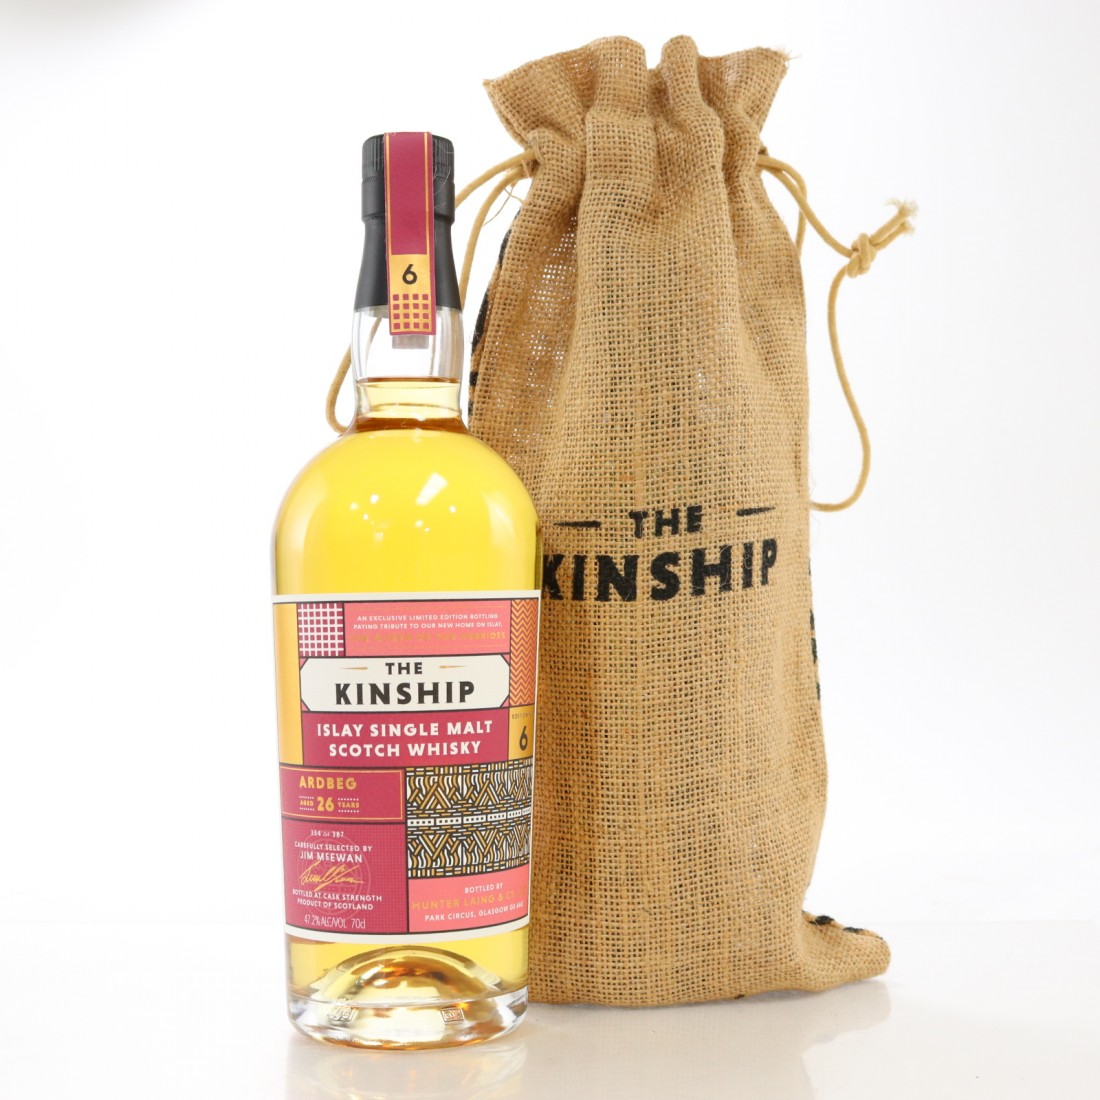 Ardbeg 26 Year Old Hunter Laing Kinship / Feis Ile 2019